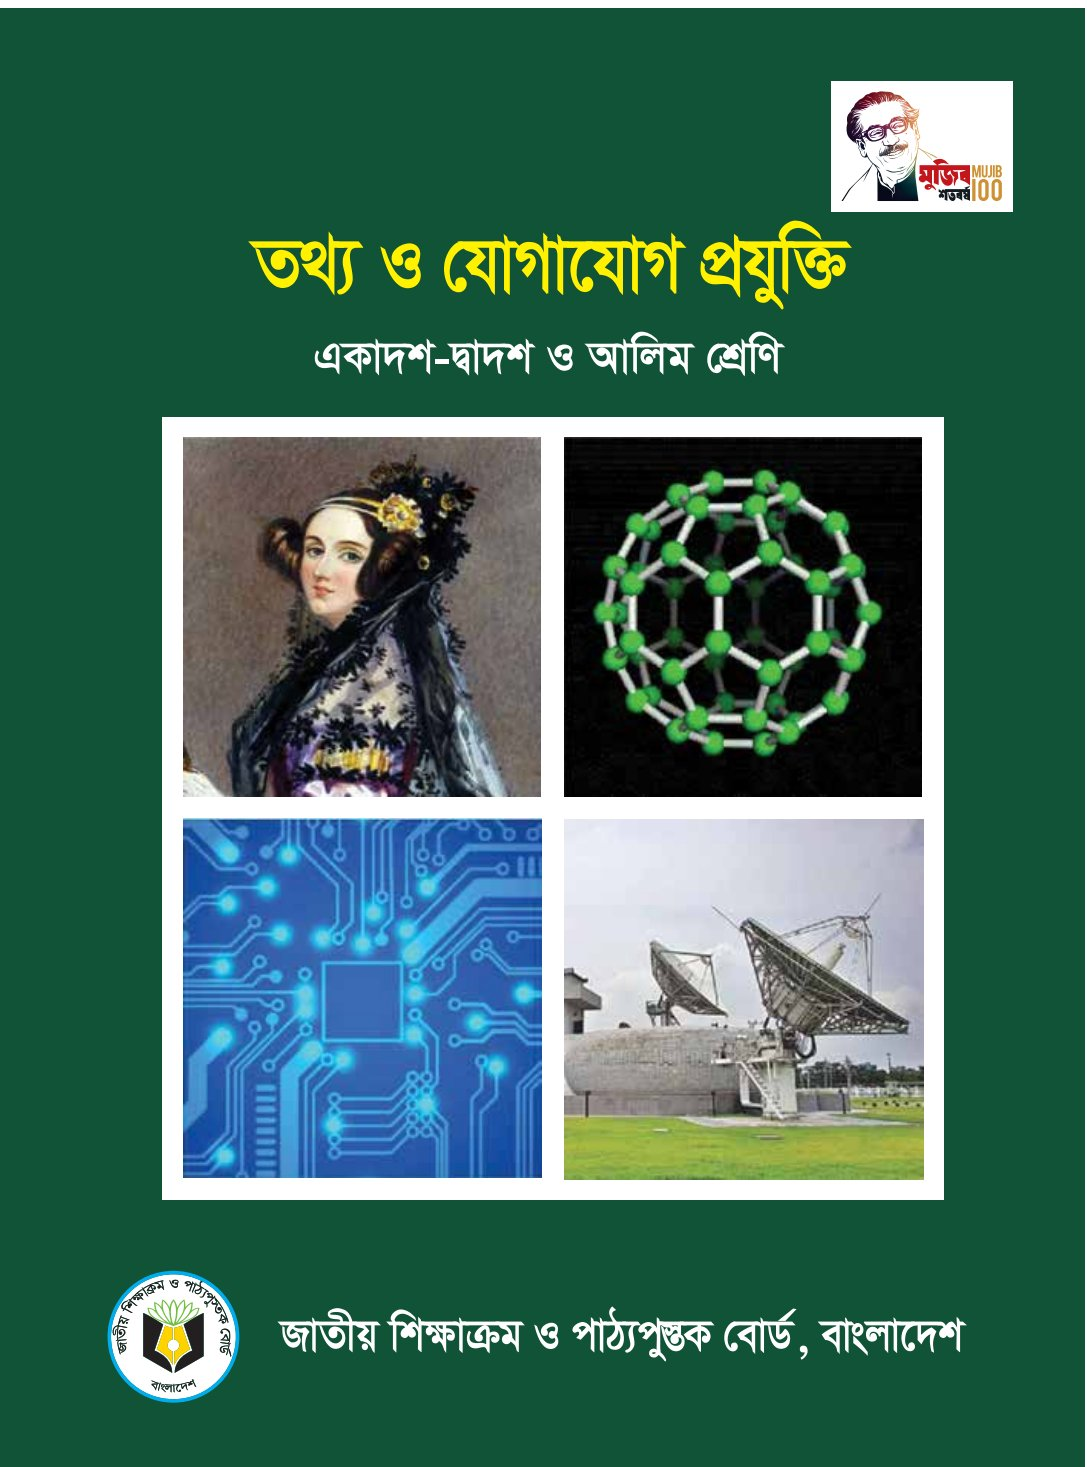 Hsc ict book ( New Edition) pdf Download